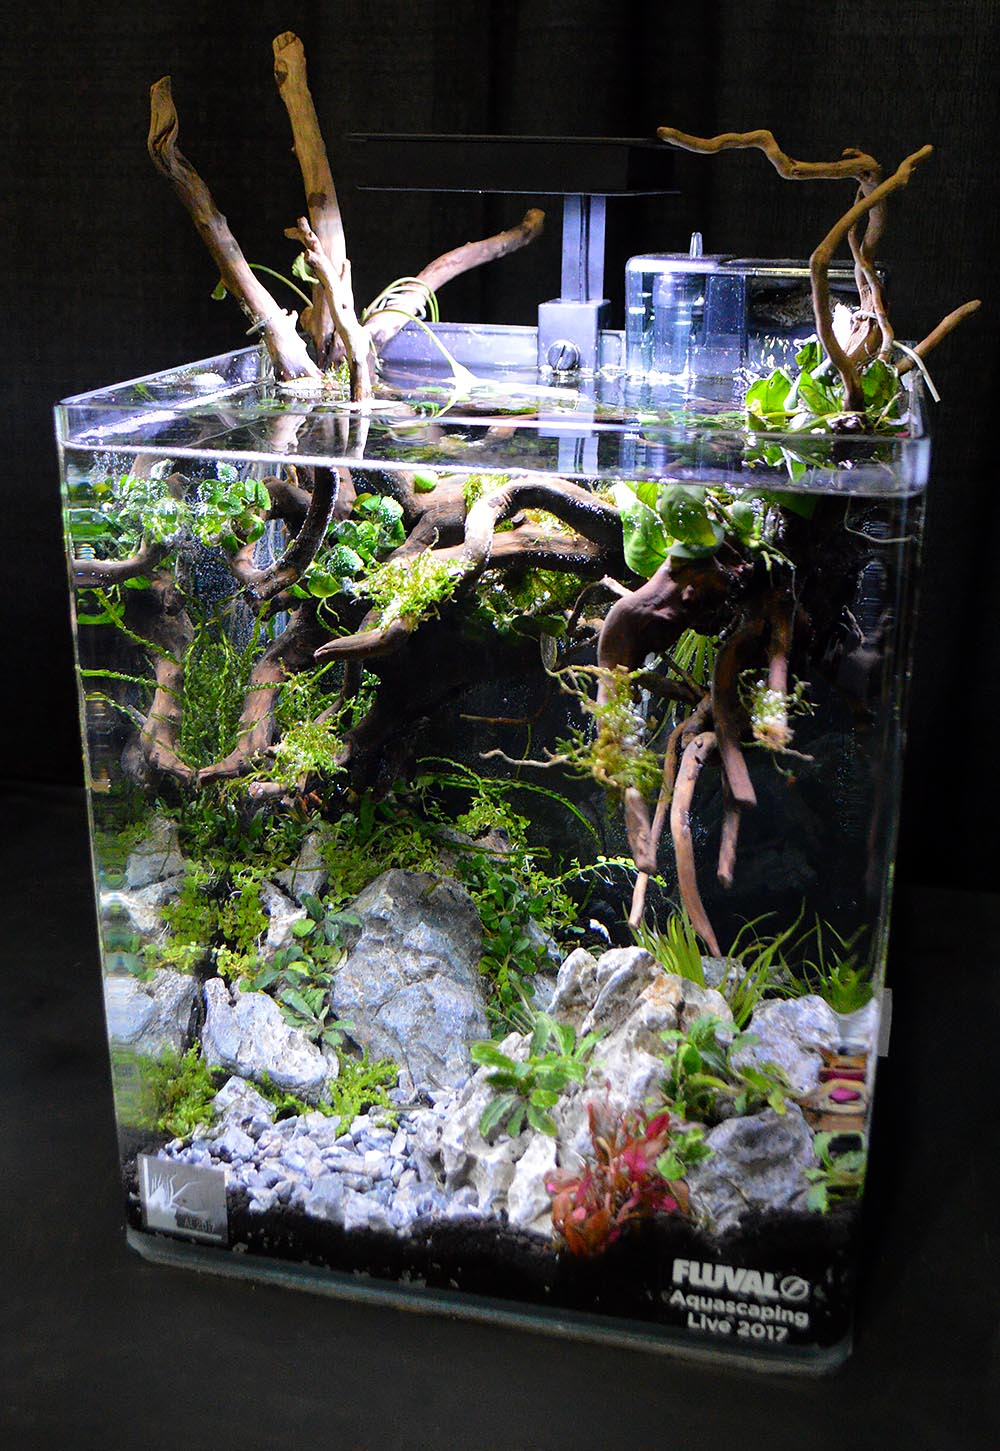 Aquascape by Brian Covey